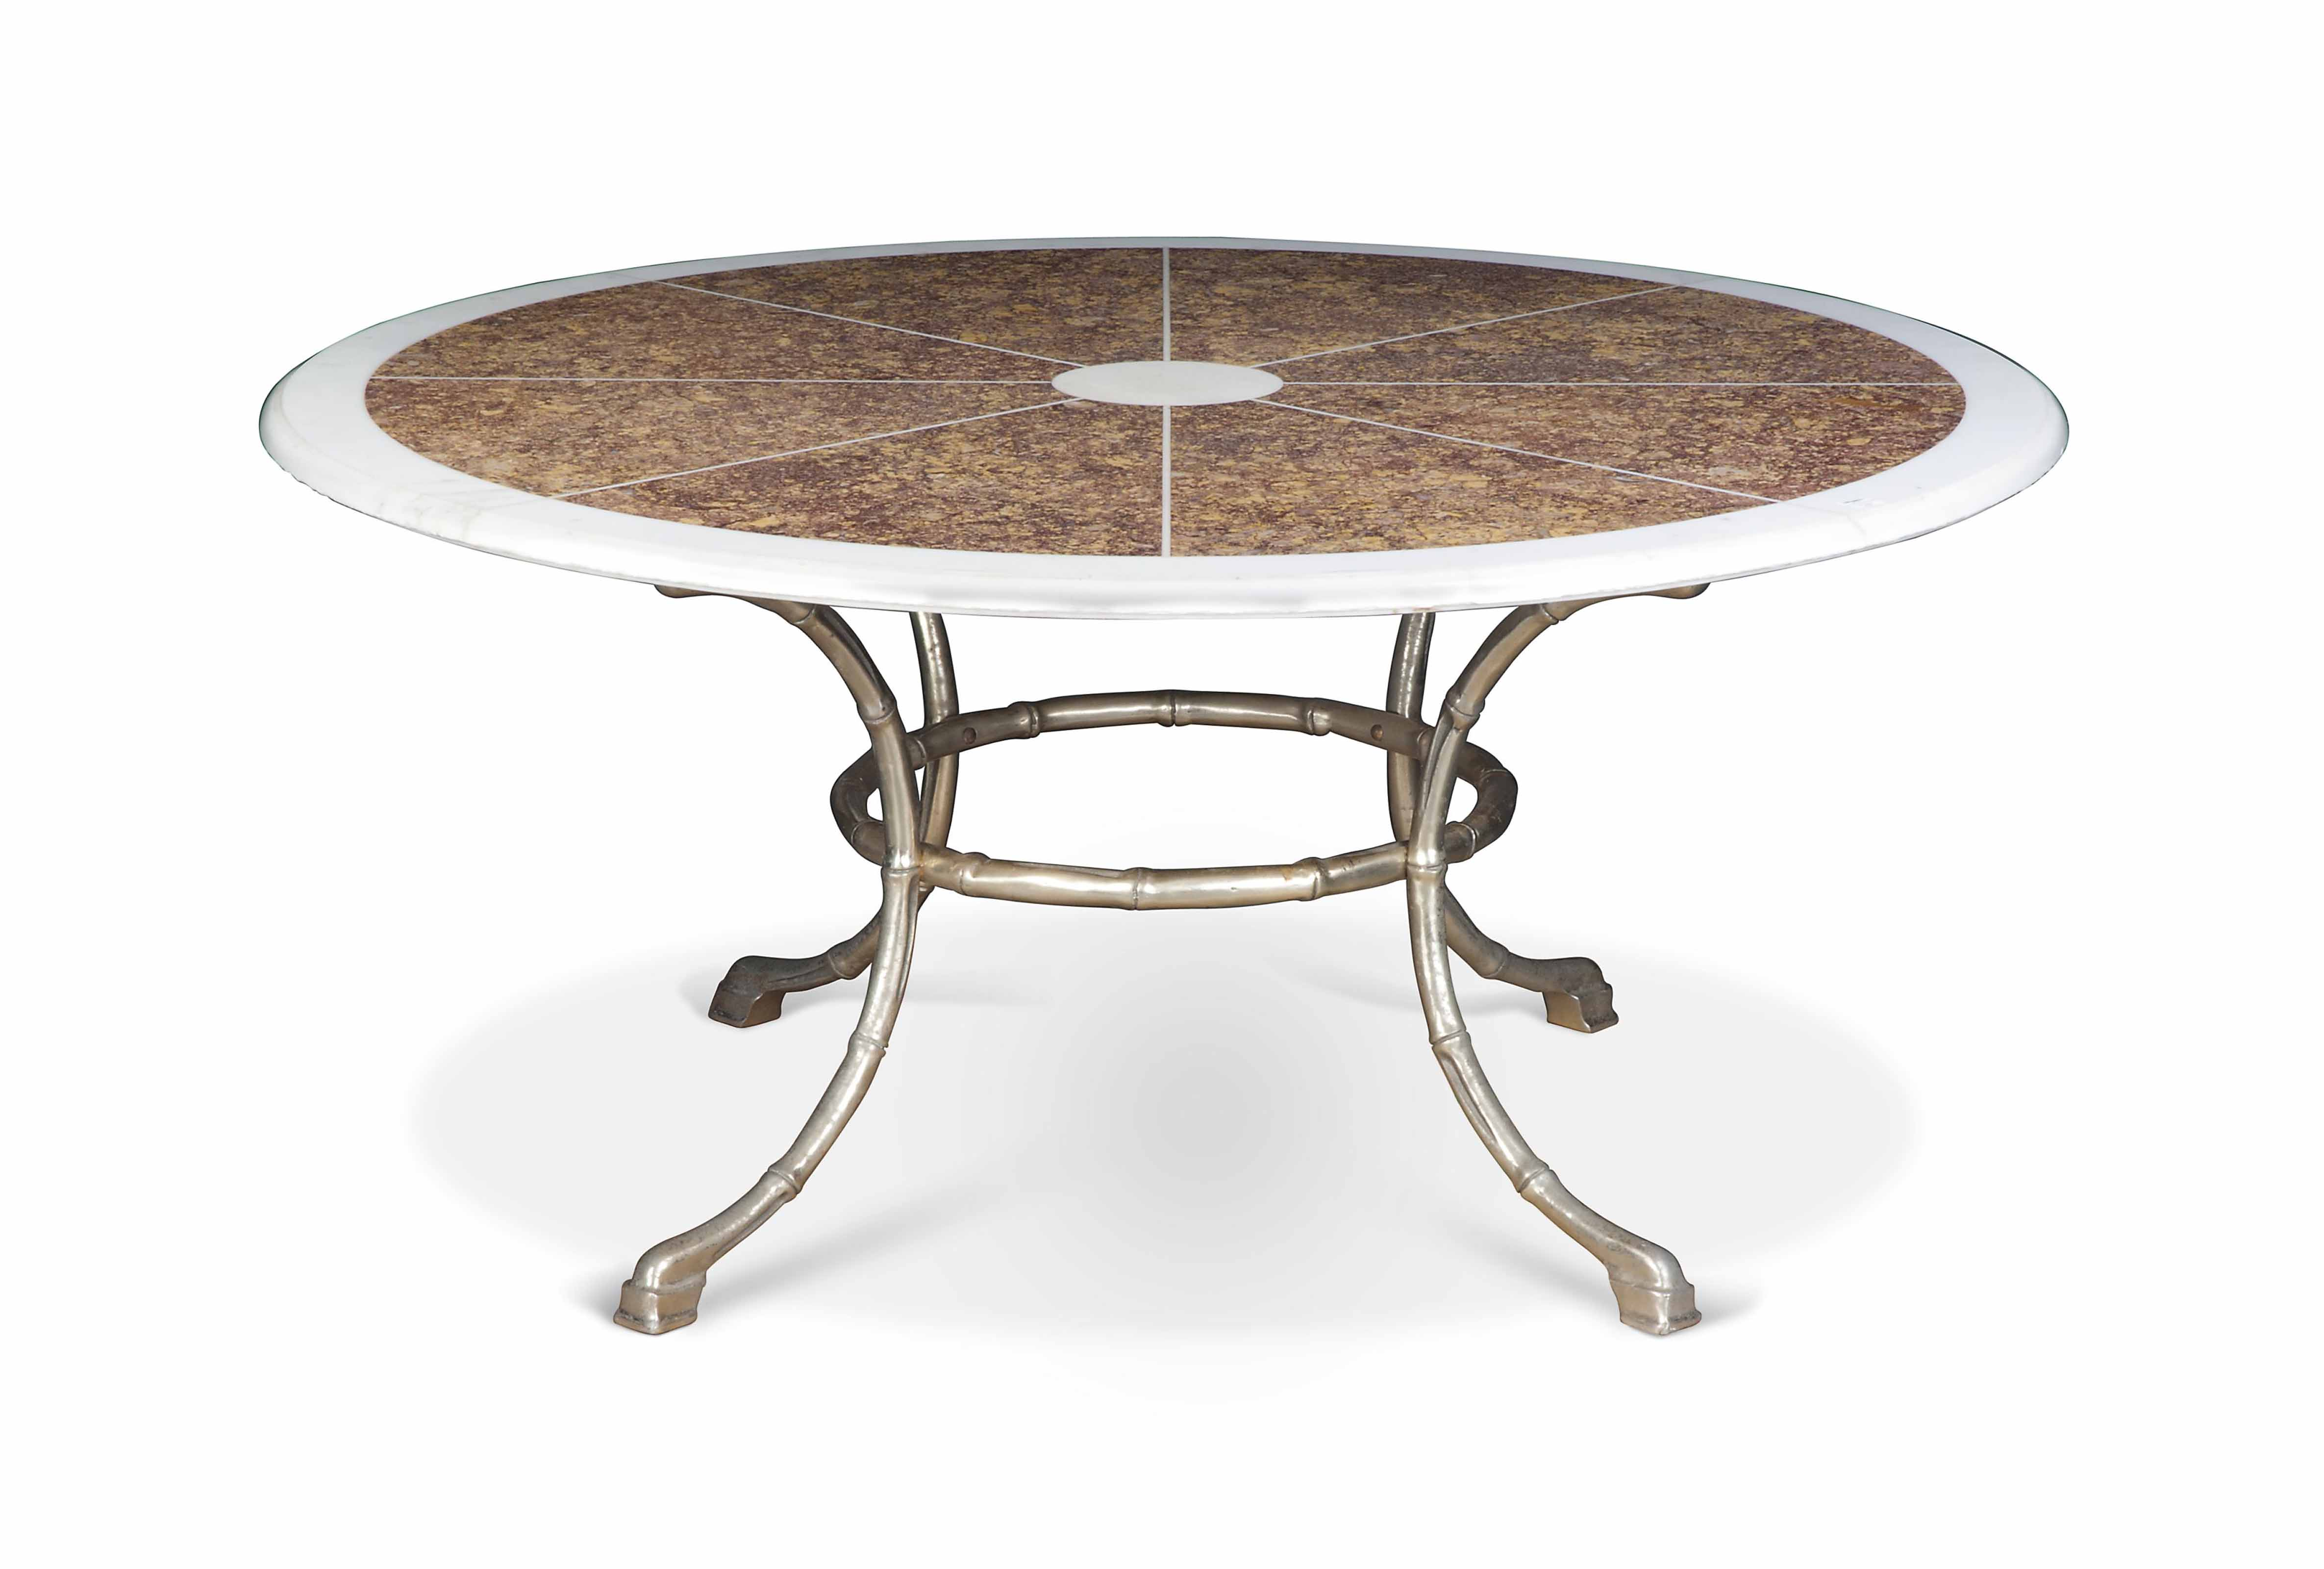 A CIRCULAR MARBLE-TOP TABLE